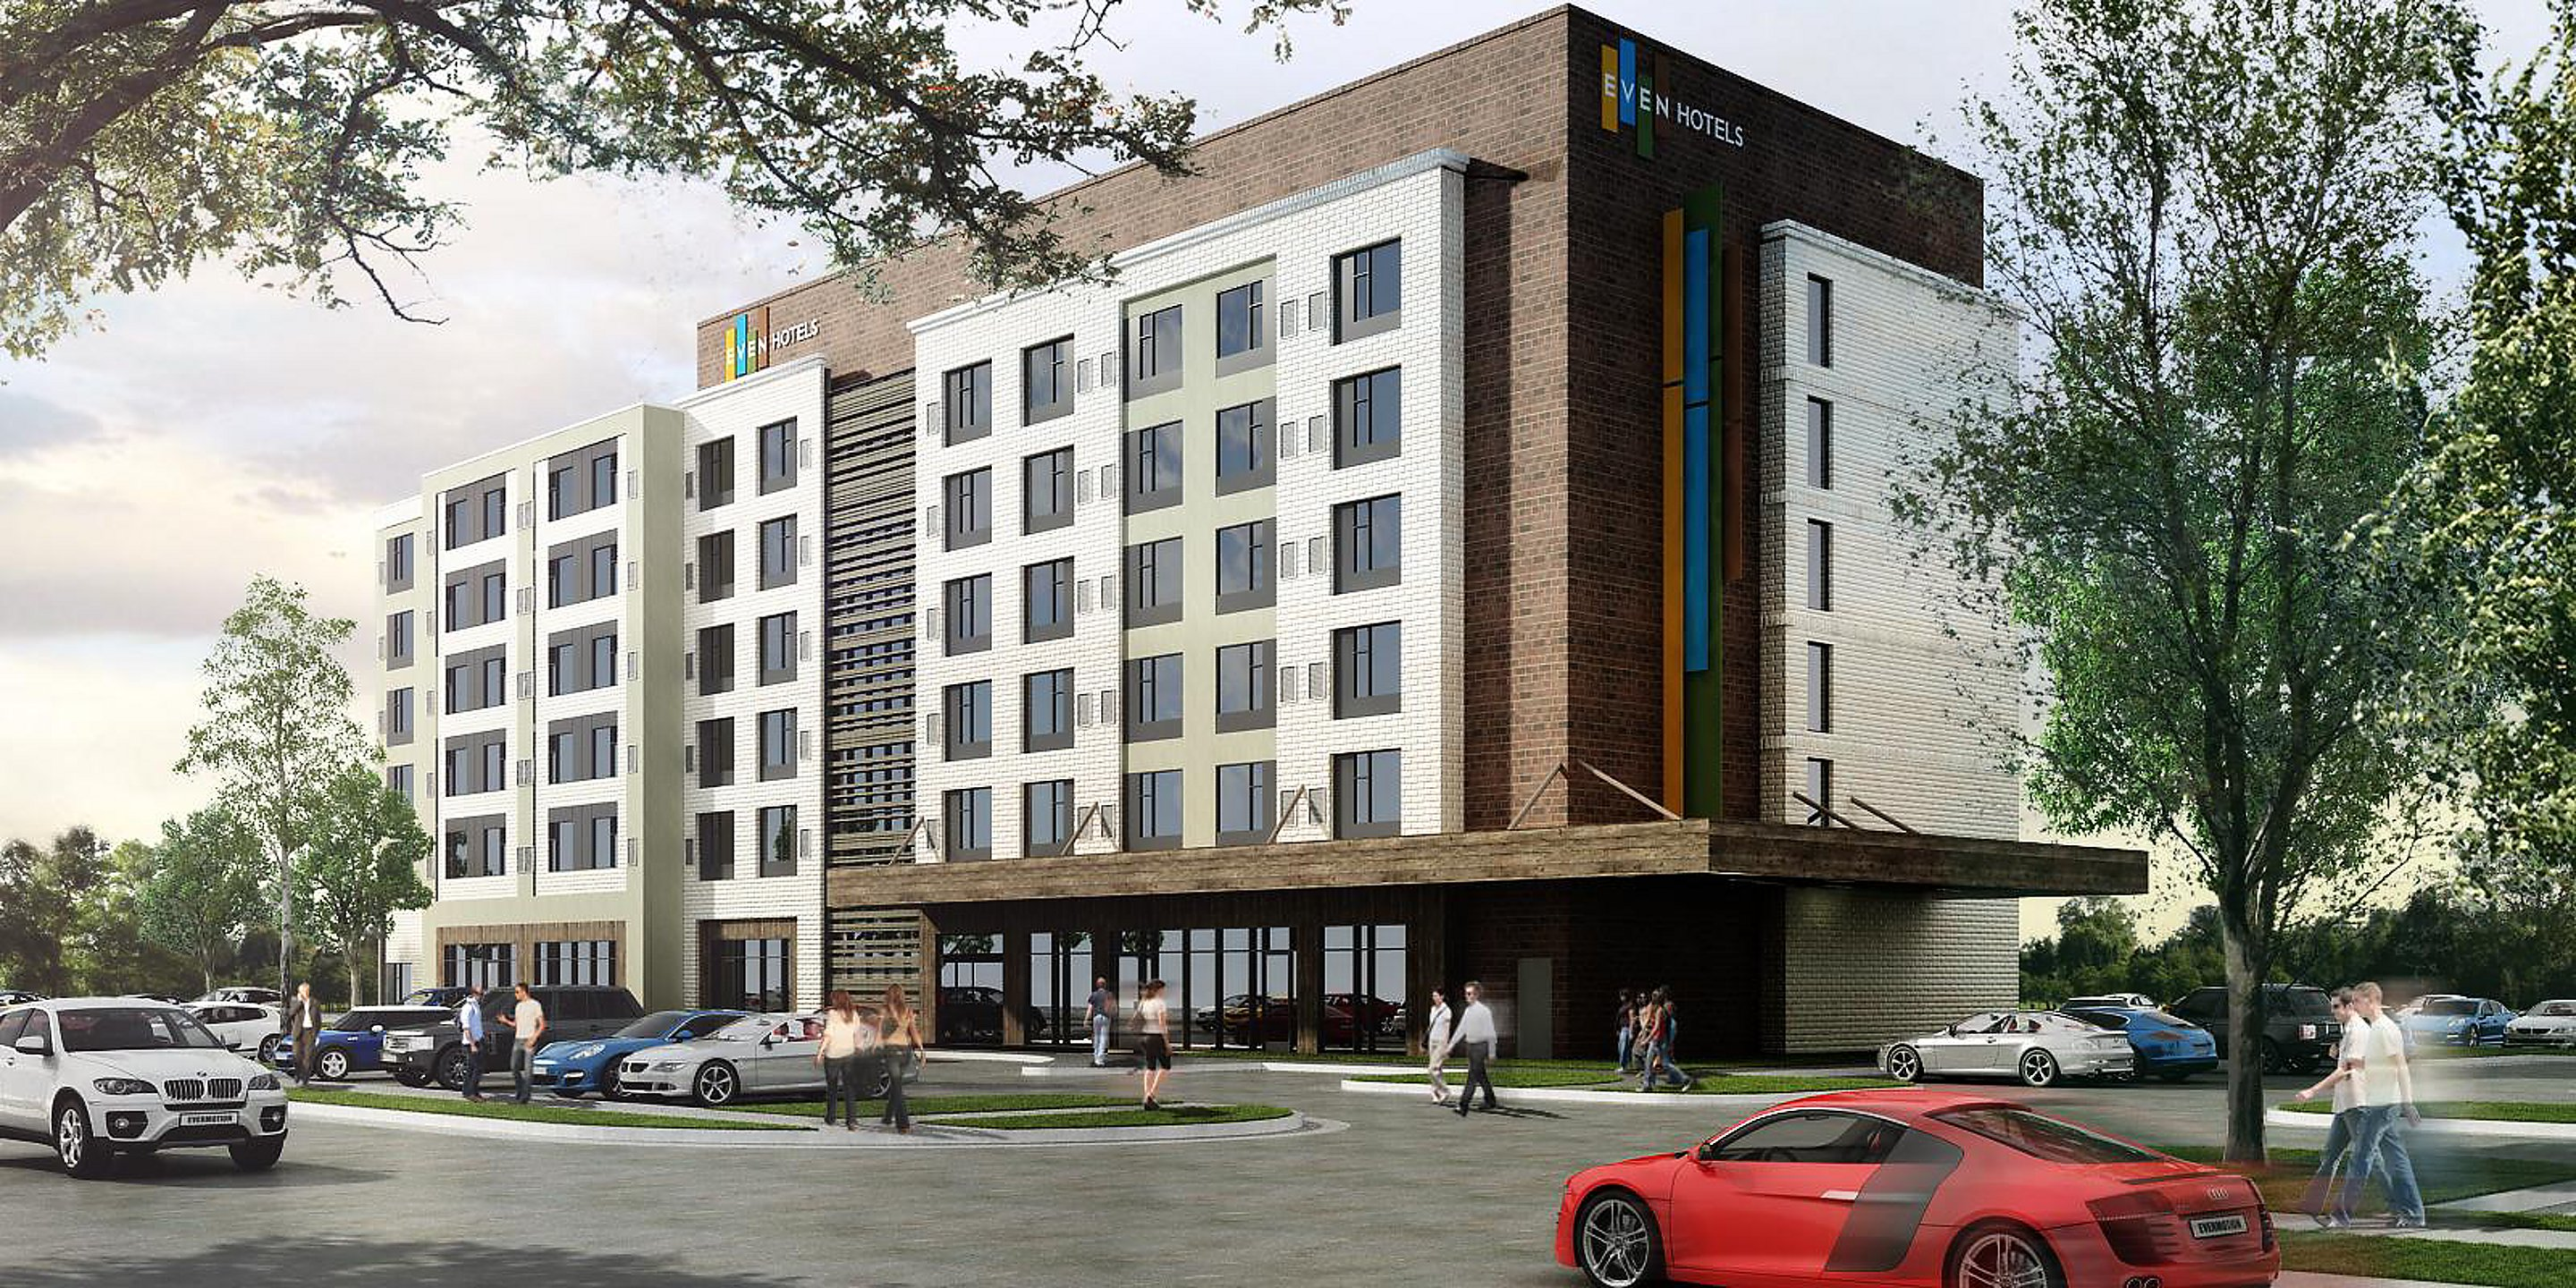 A rendering of the soon-to-open hotel, a heavily geometric building with wood paneling on the facade.